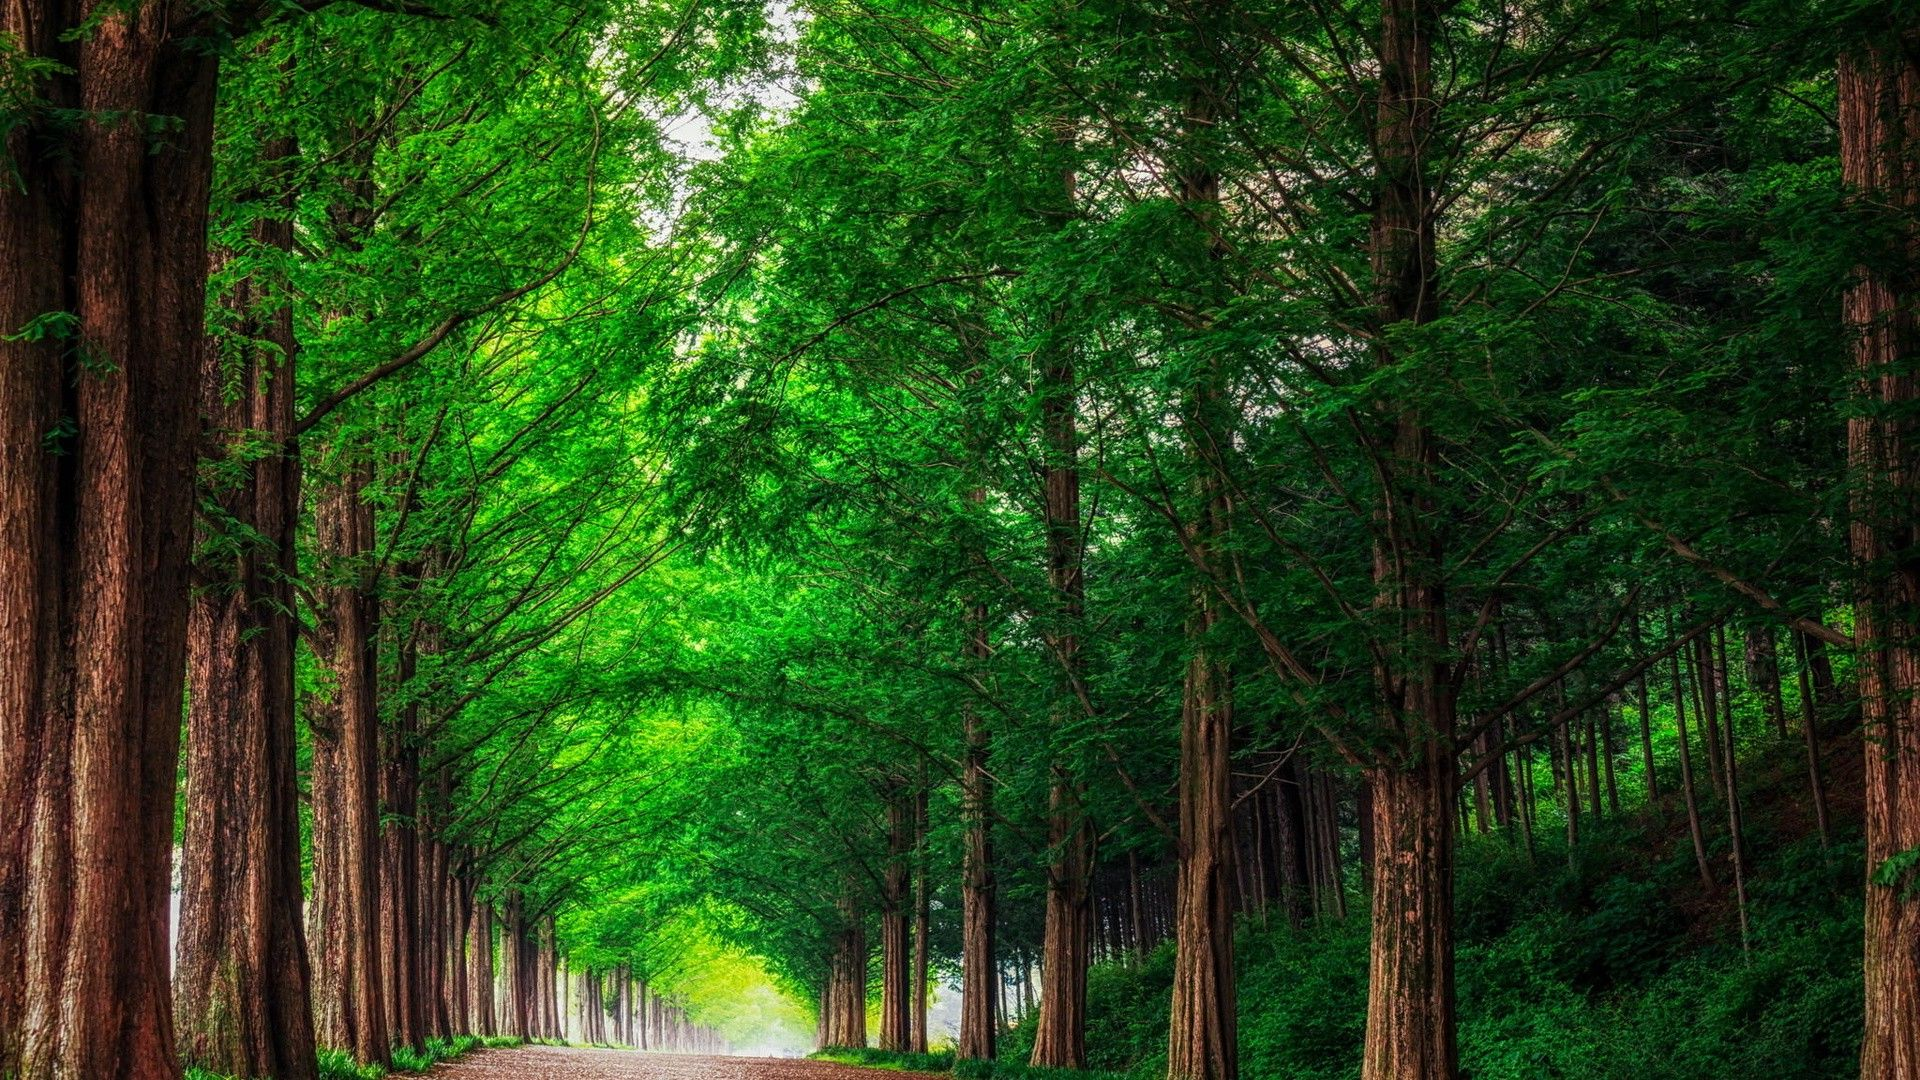 Beautiful Photo Of The Forest